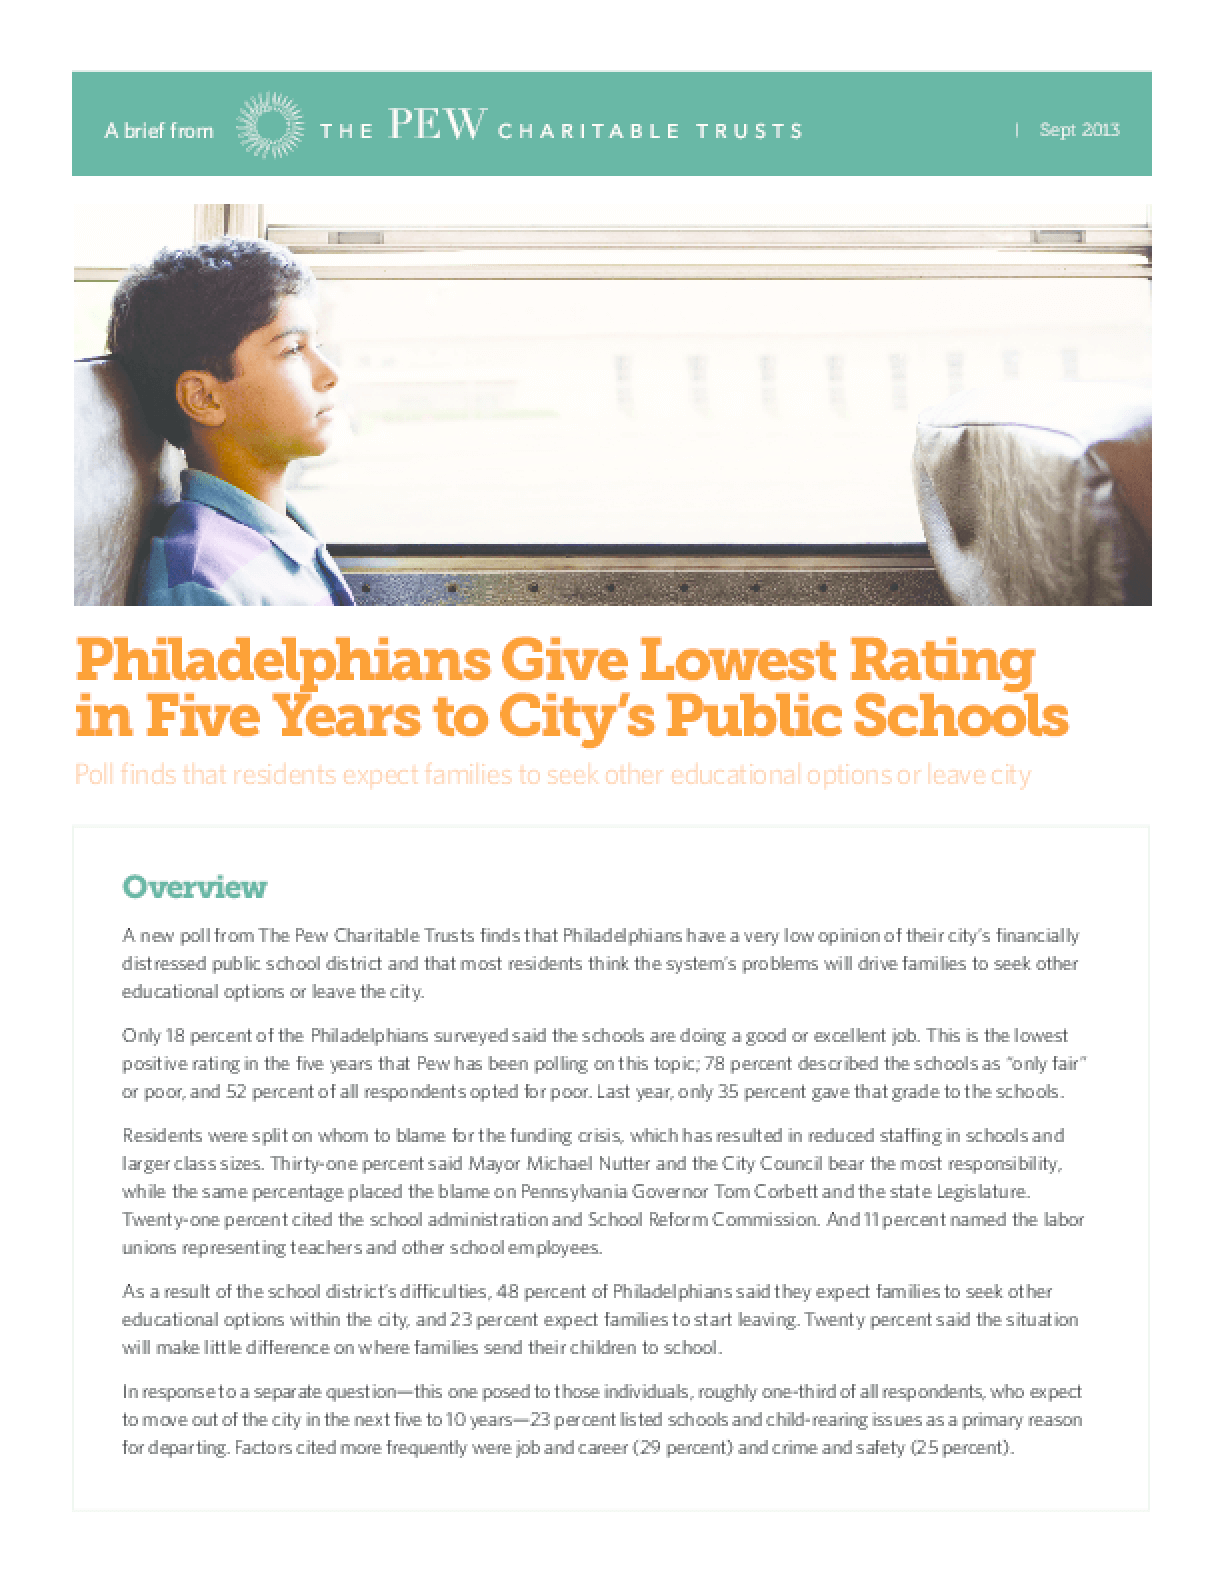 Philadelphians Give Lowest Rating in Five Years to City's Public Schools